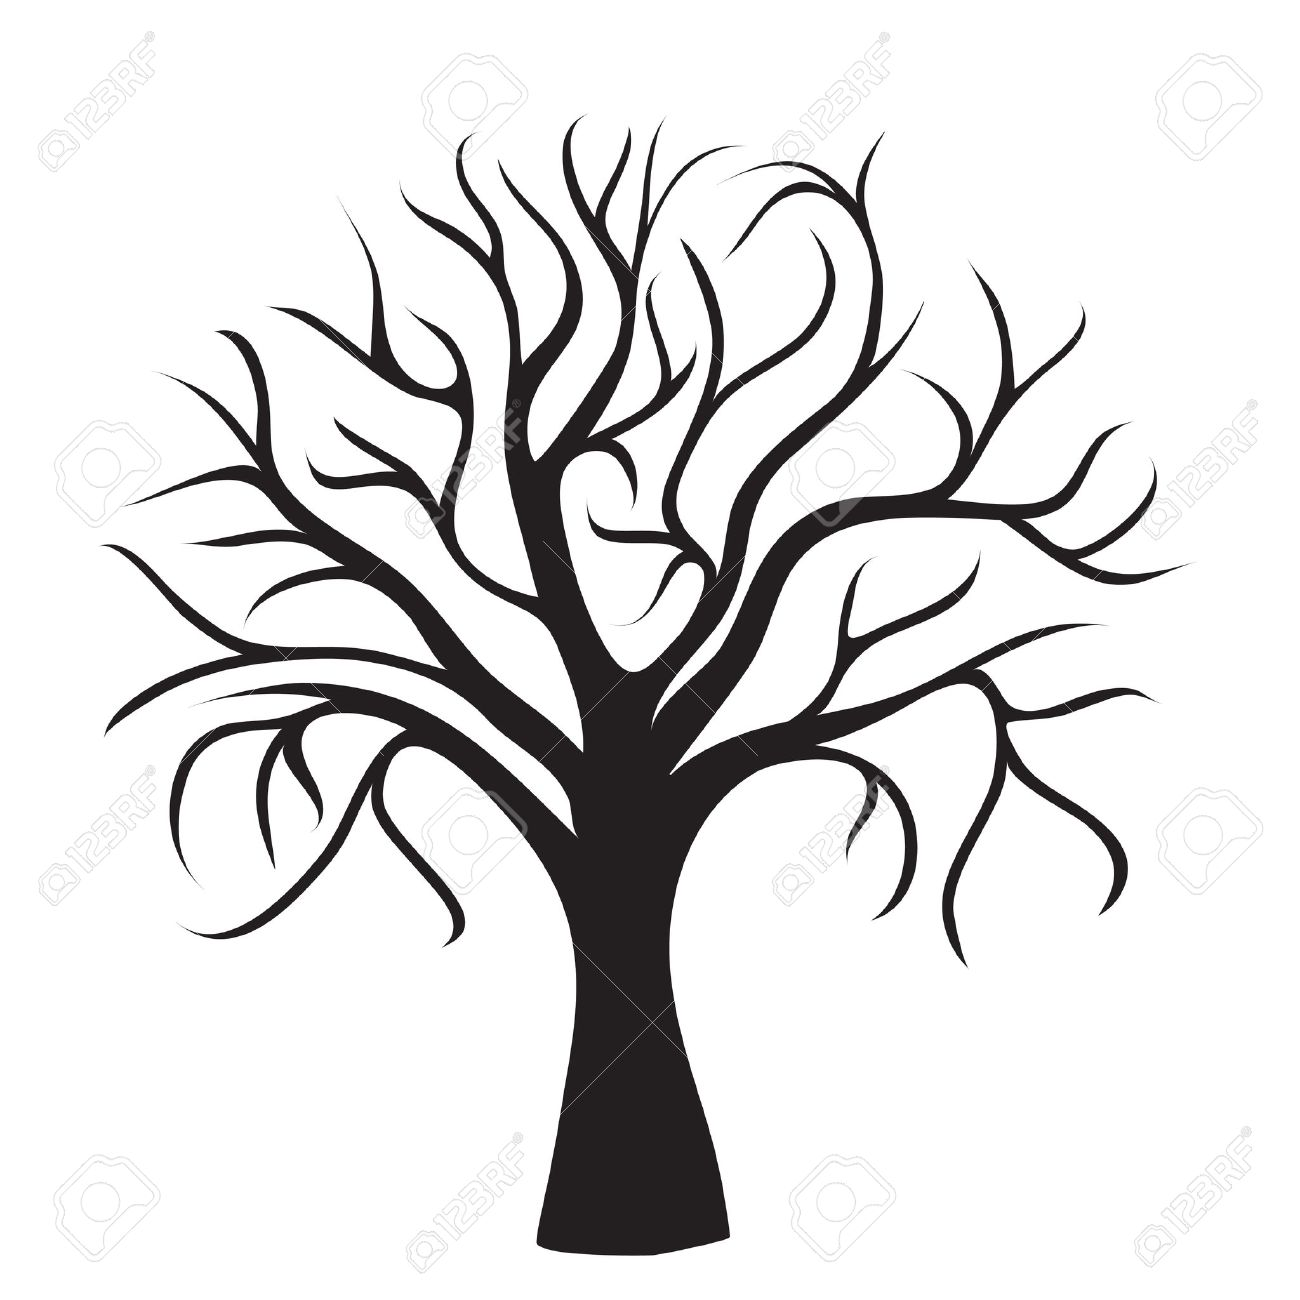 black tree without leaves on How To Draw A Cartoon Tree Without Leaves